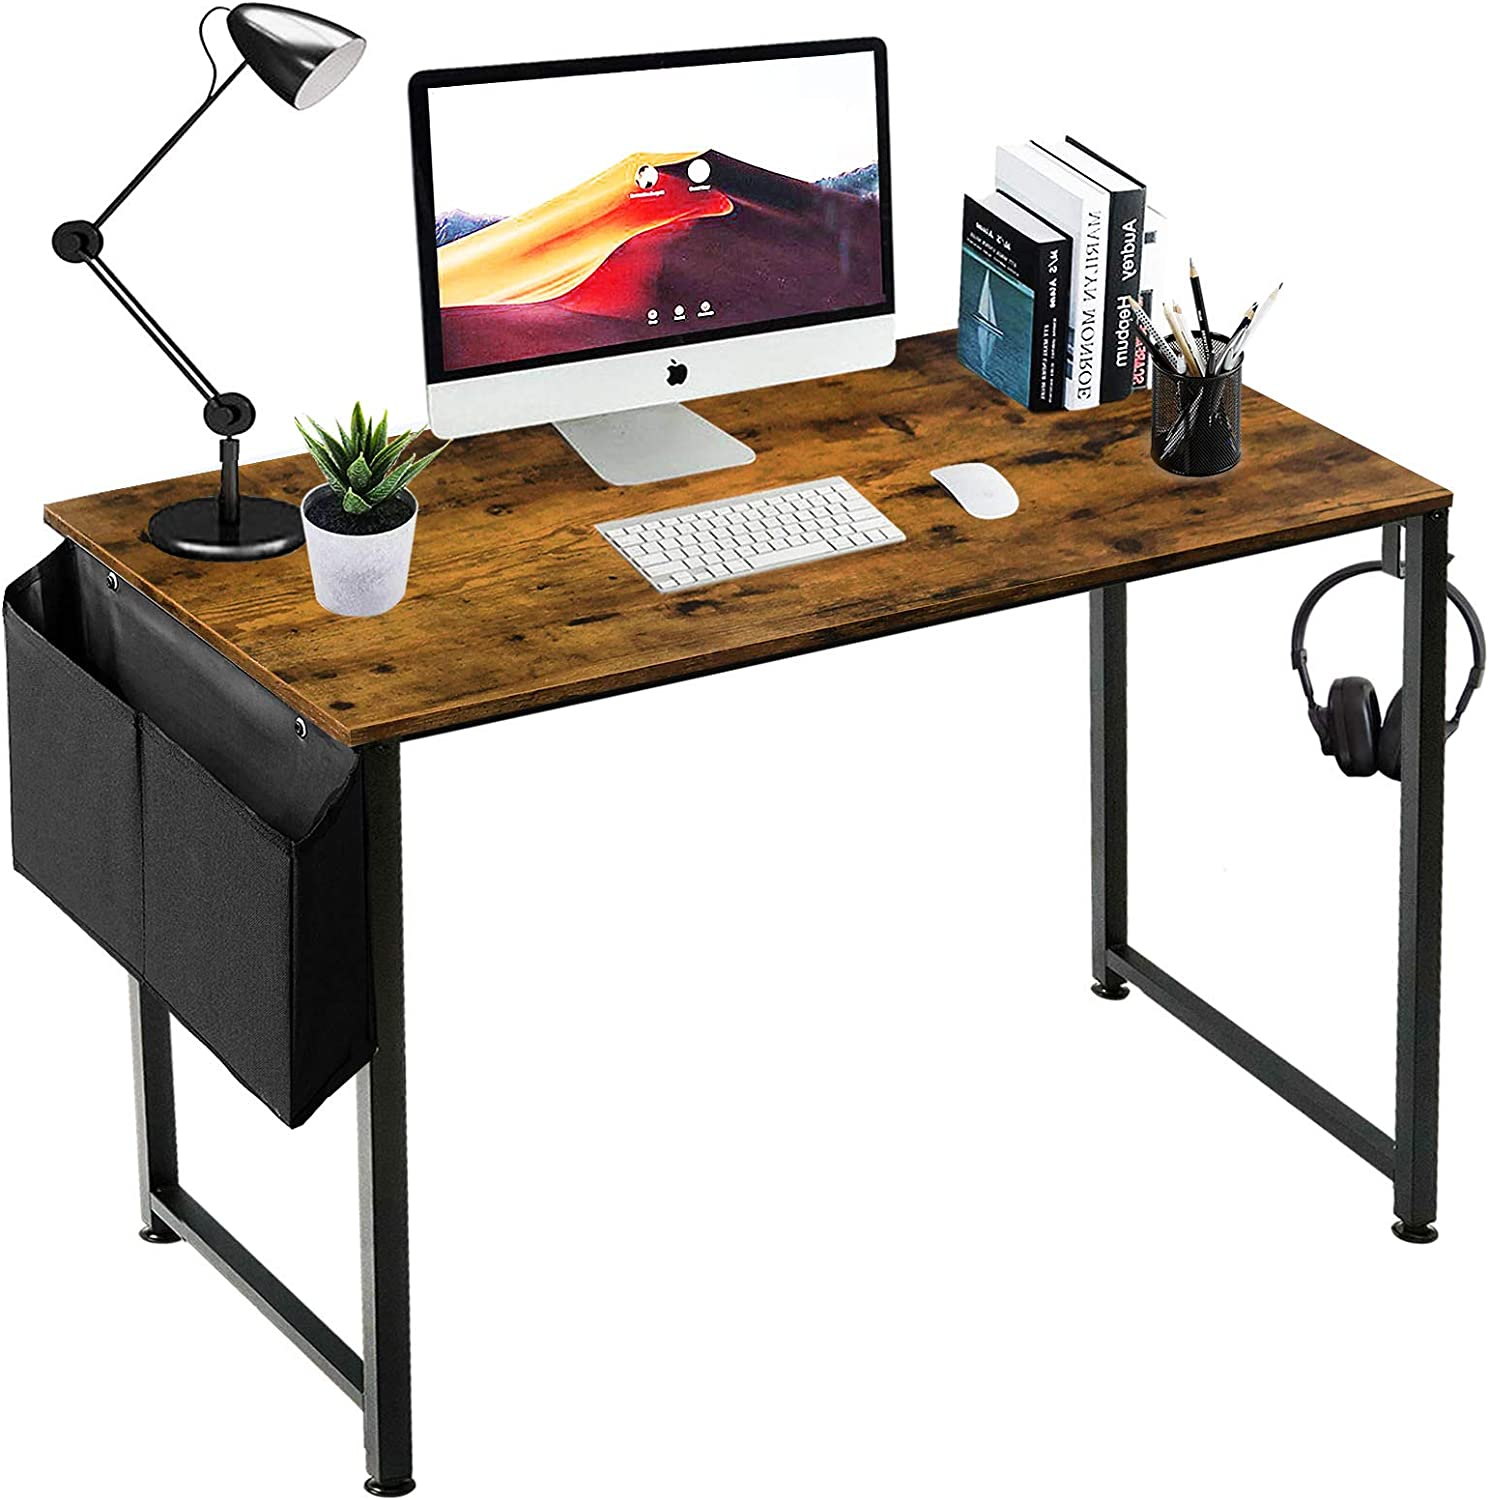 Small Computer Desk Study Table for Small Spaces Home Office 39 Inch Rustic Student Writing Des with Storage Bag,Brown